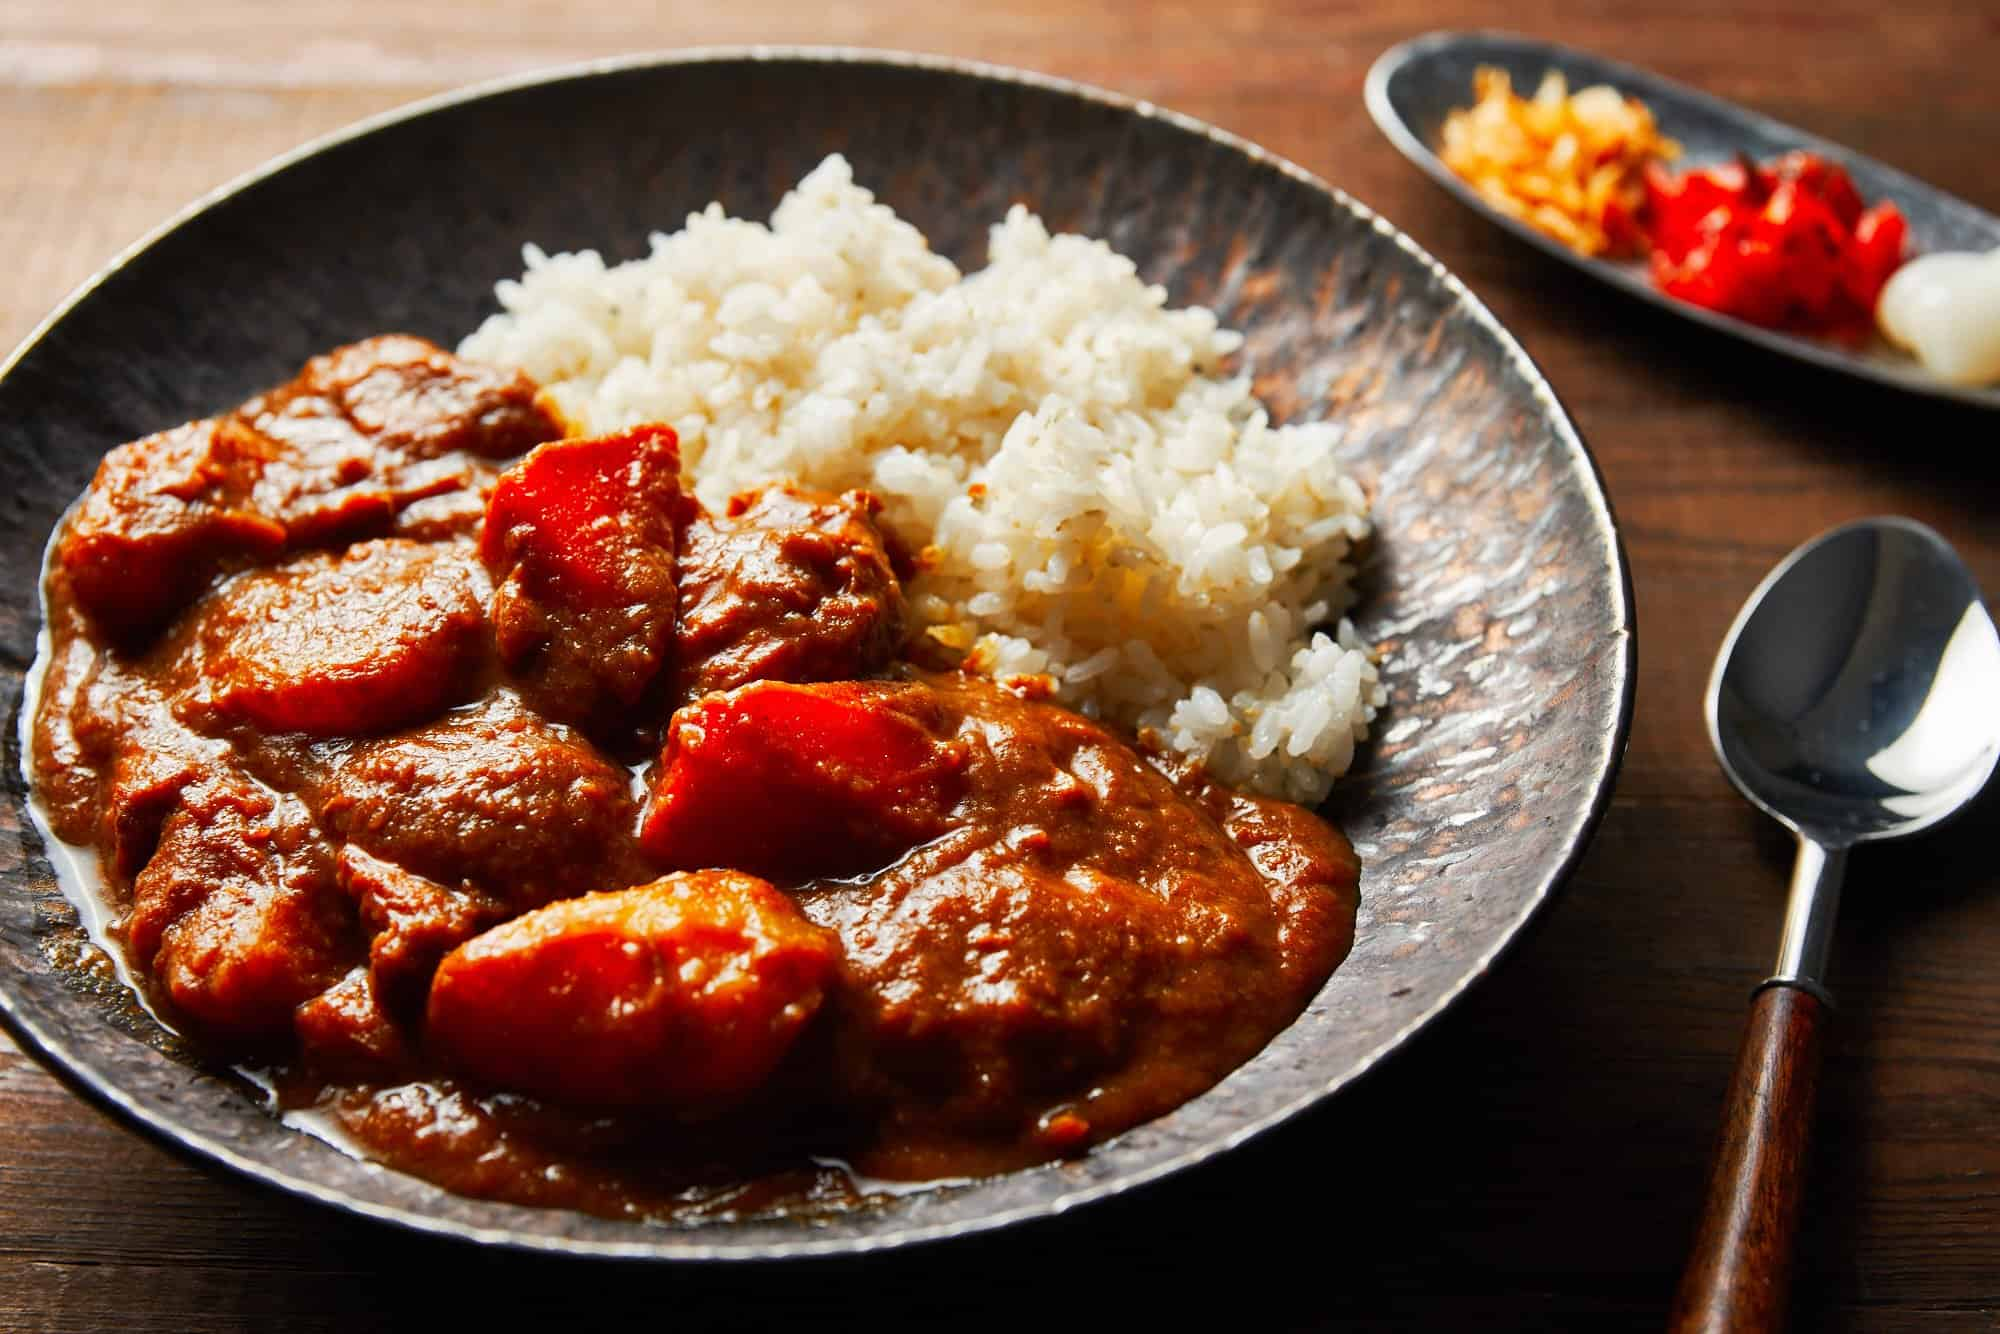 With melt-in-your mouth chunks of chicken, carrots and potatoes, this Japanese Curry from Scratch is the perfect hearty meal for a big group.